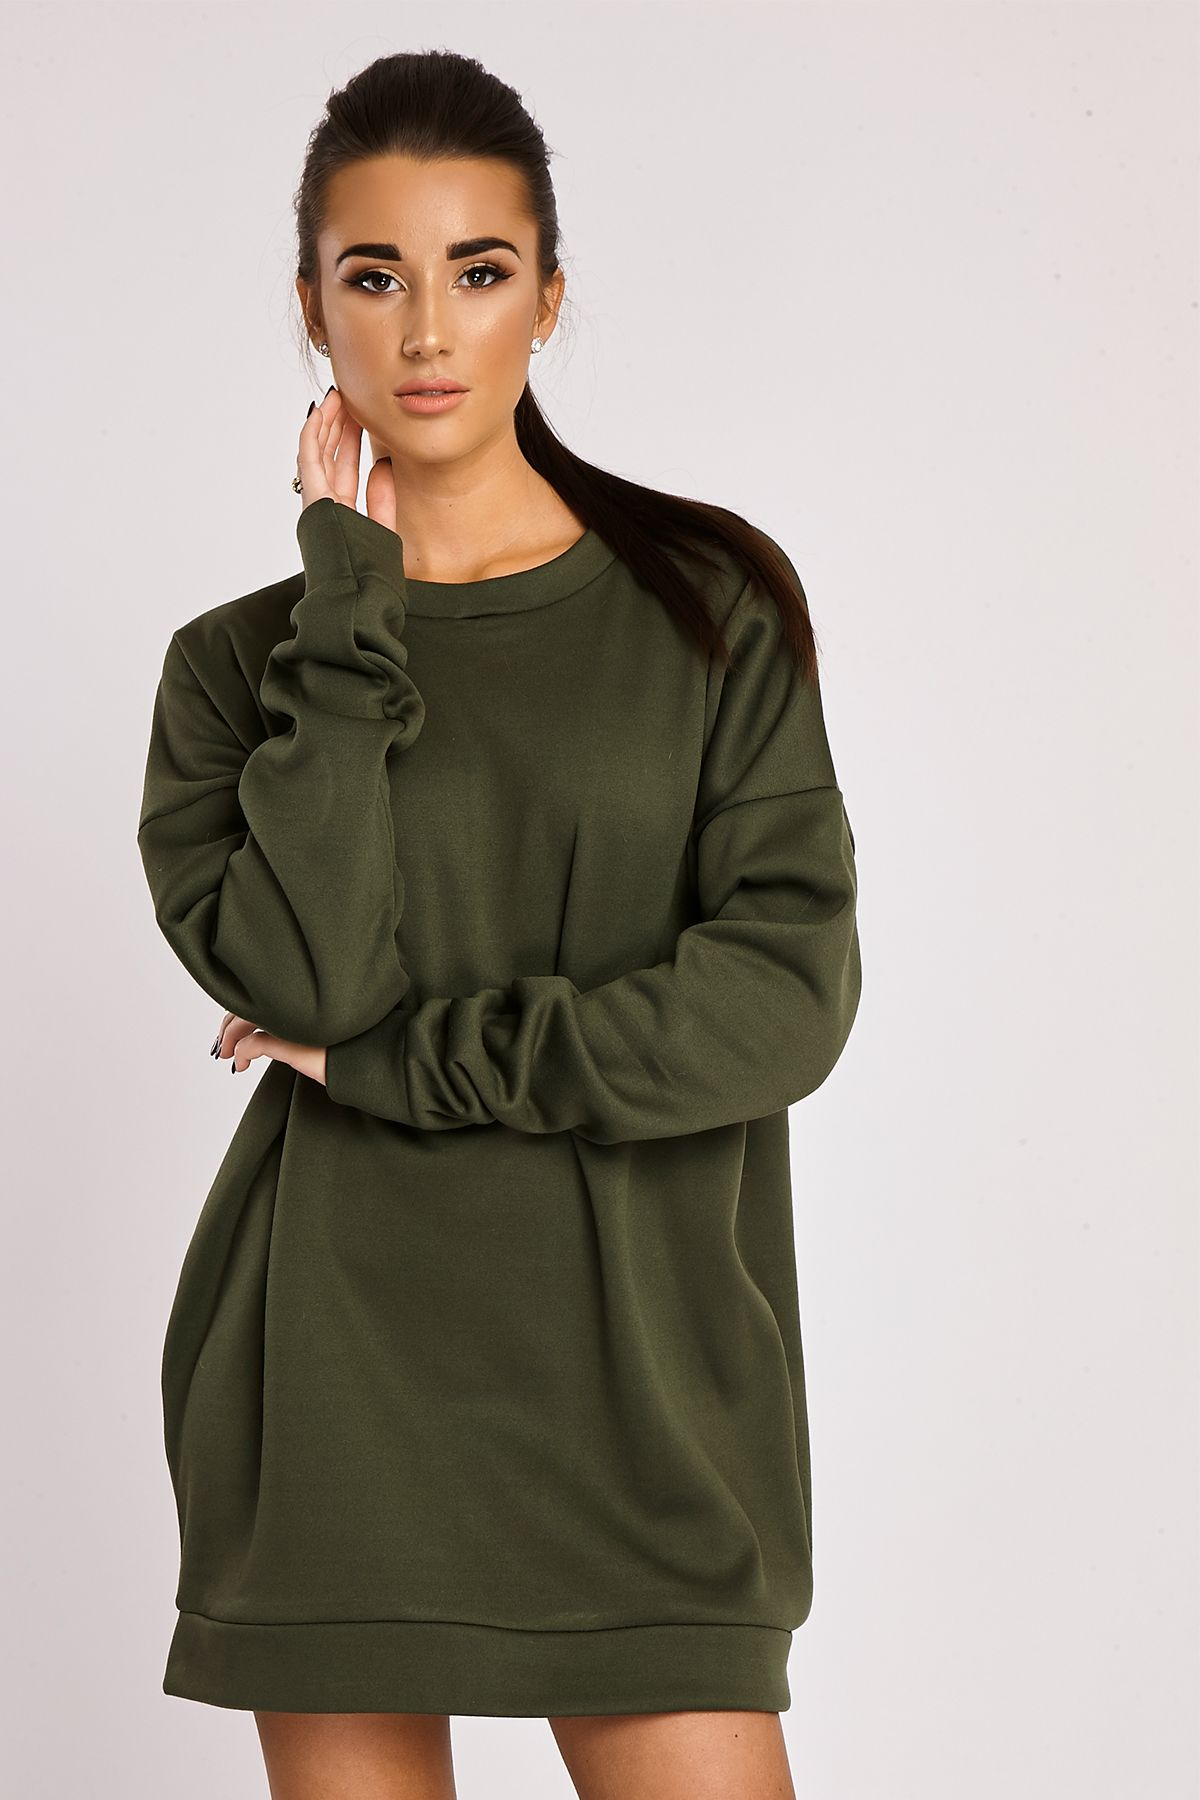 Khaki Last Oversized A Sweater Lifetime DressWardrobe Chlo To PuwkOXZiT